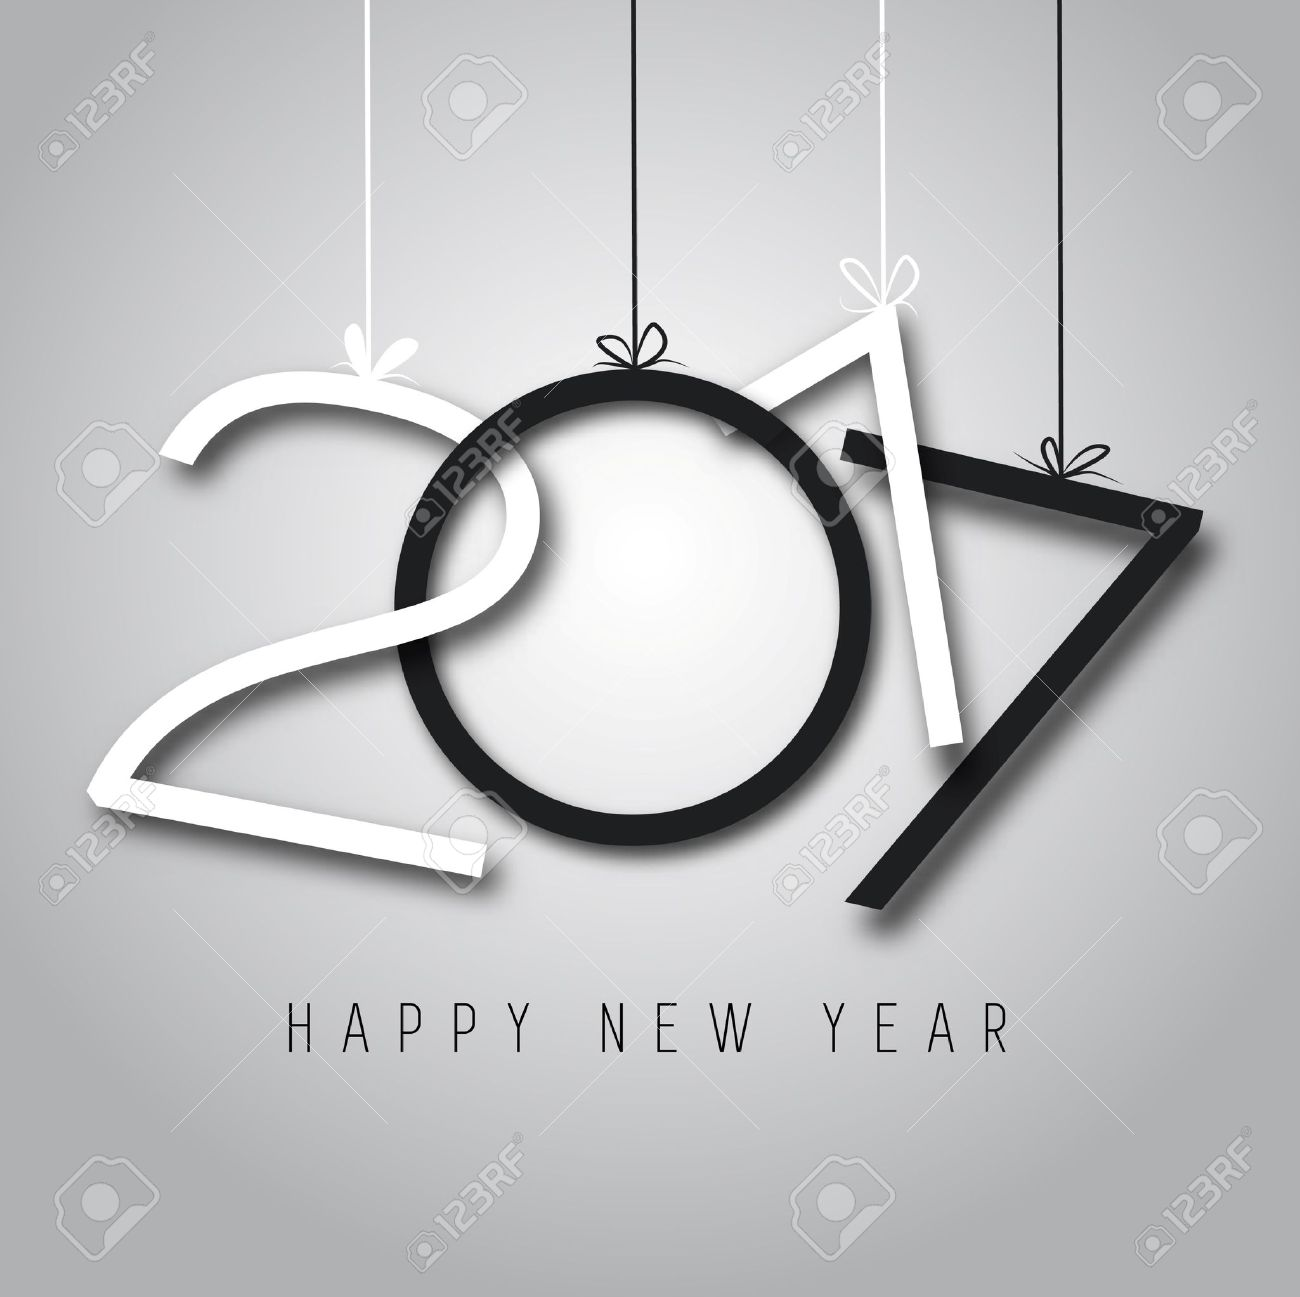 Happy New Year, 2017, black and white colors - 65806927